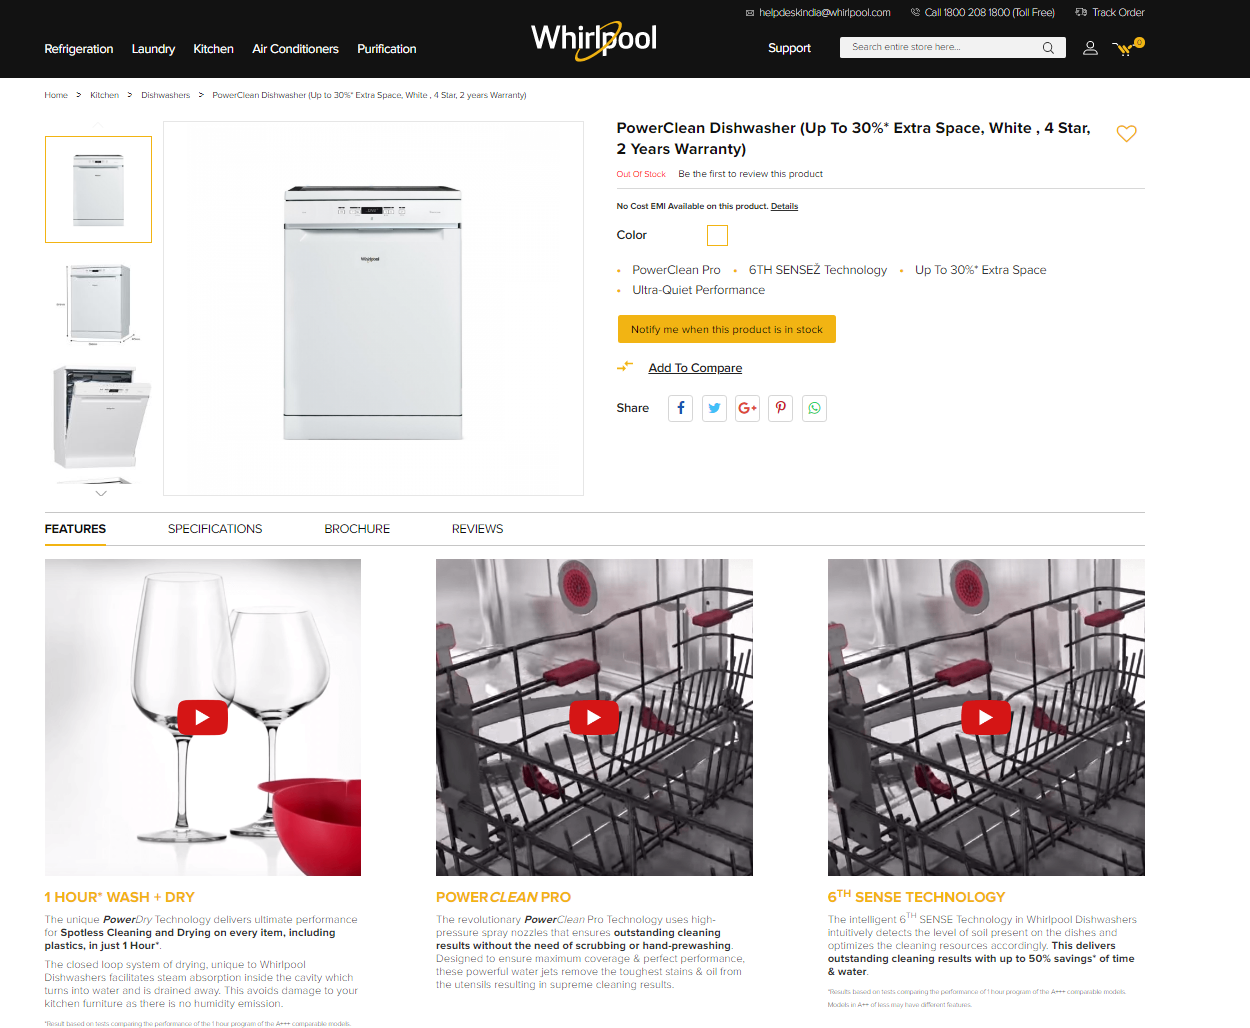 via_LocalCircles_Whirlpool_dishwasher-2_1___20200710031414___.png